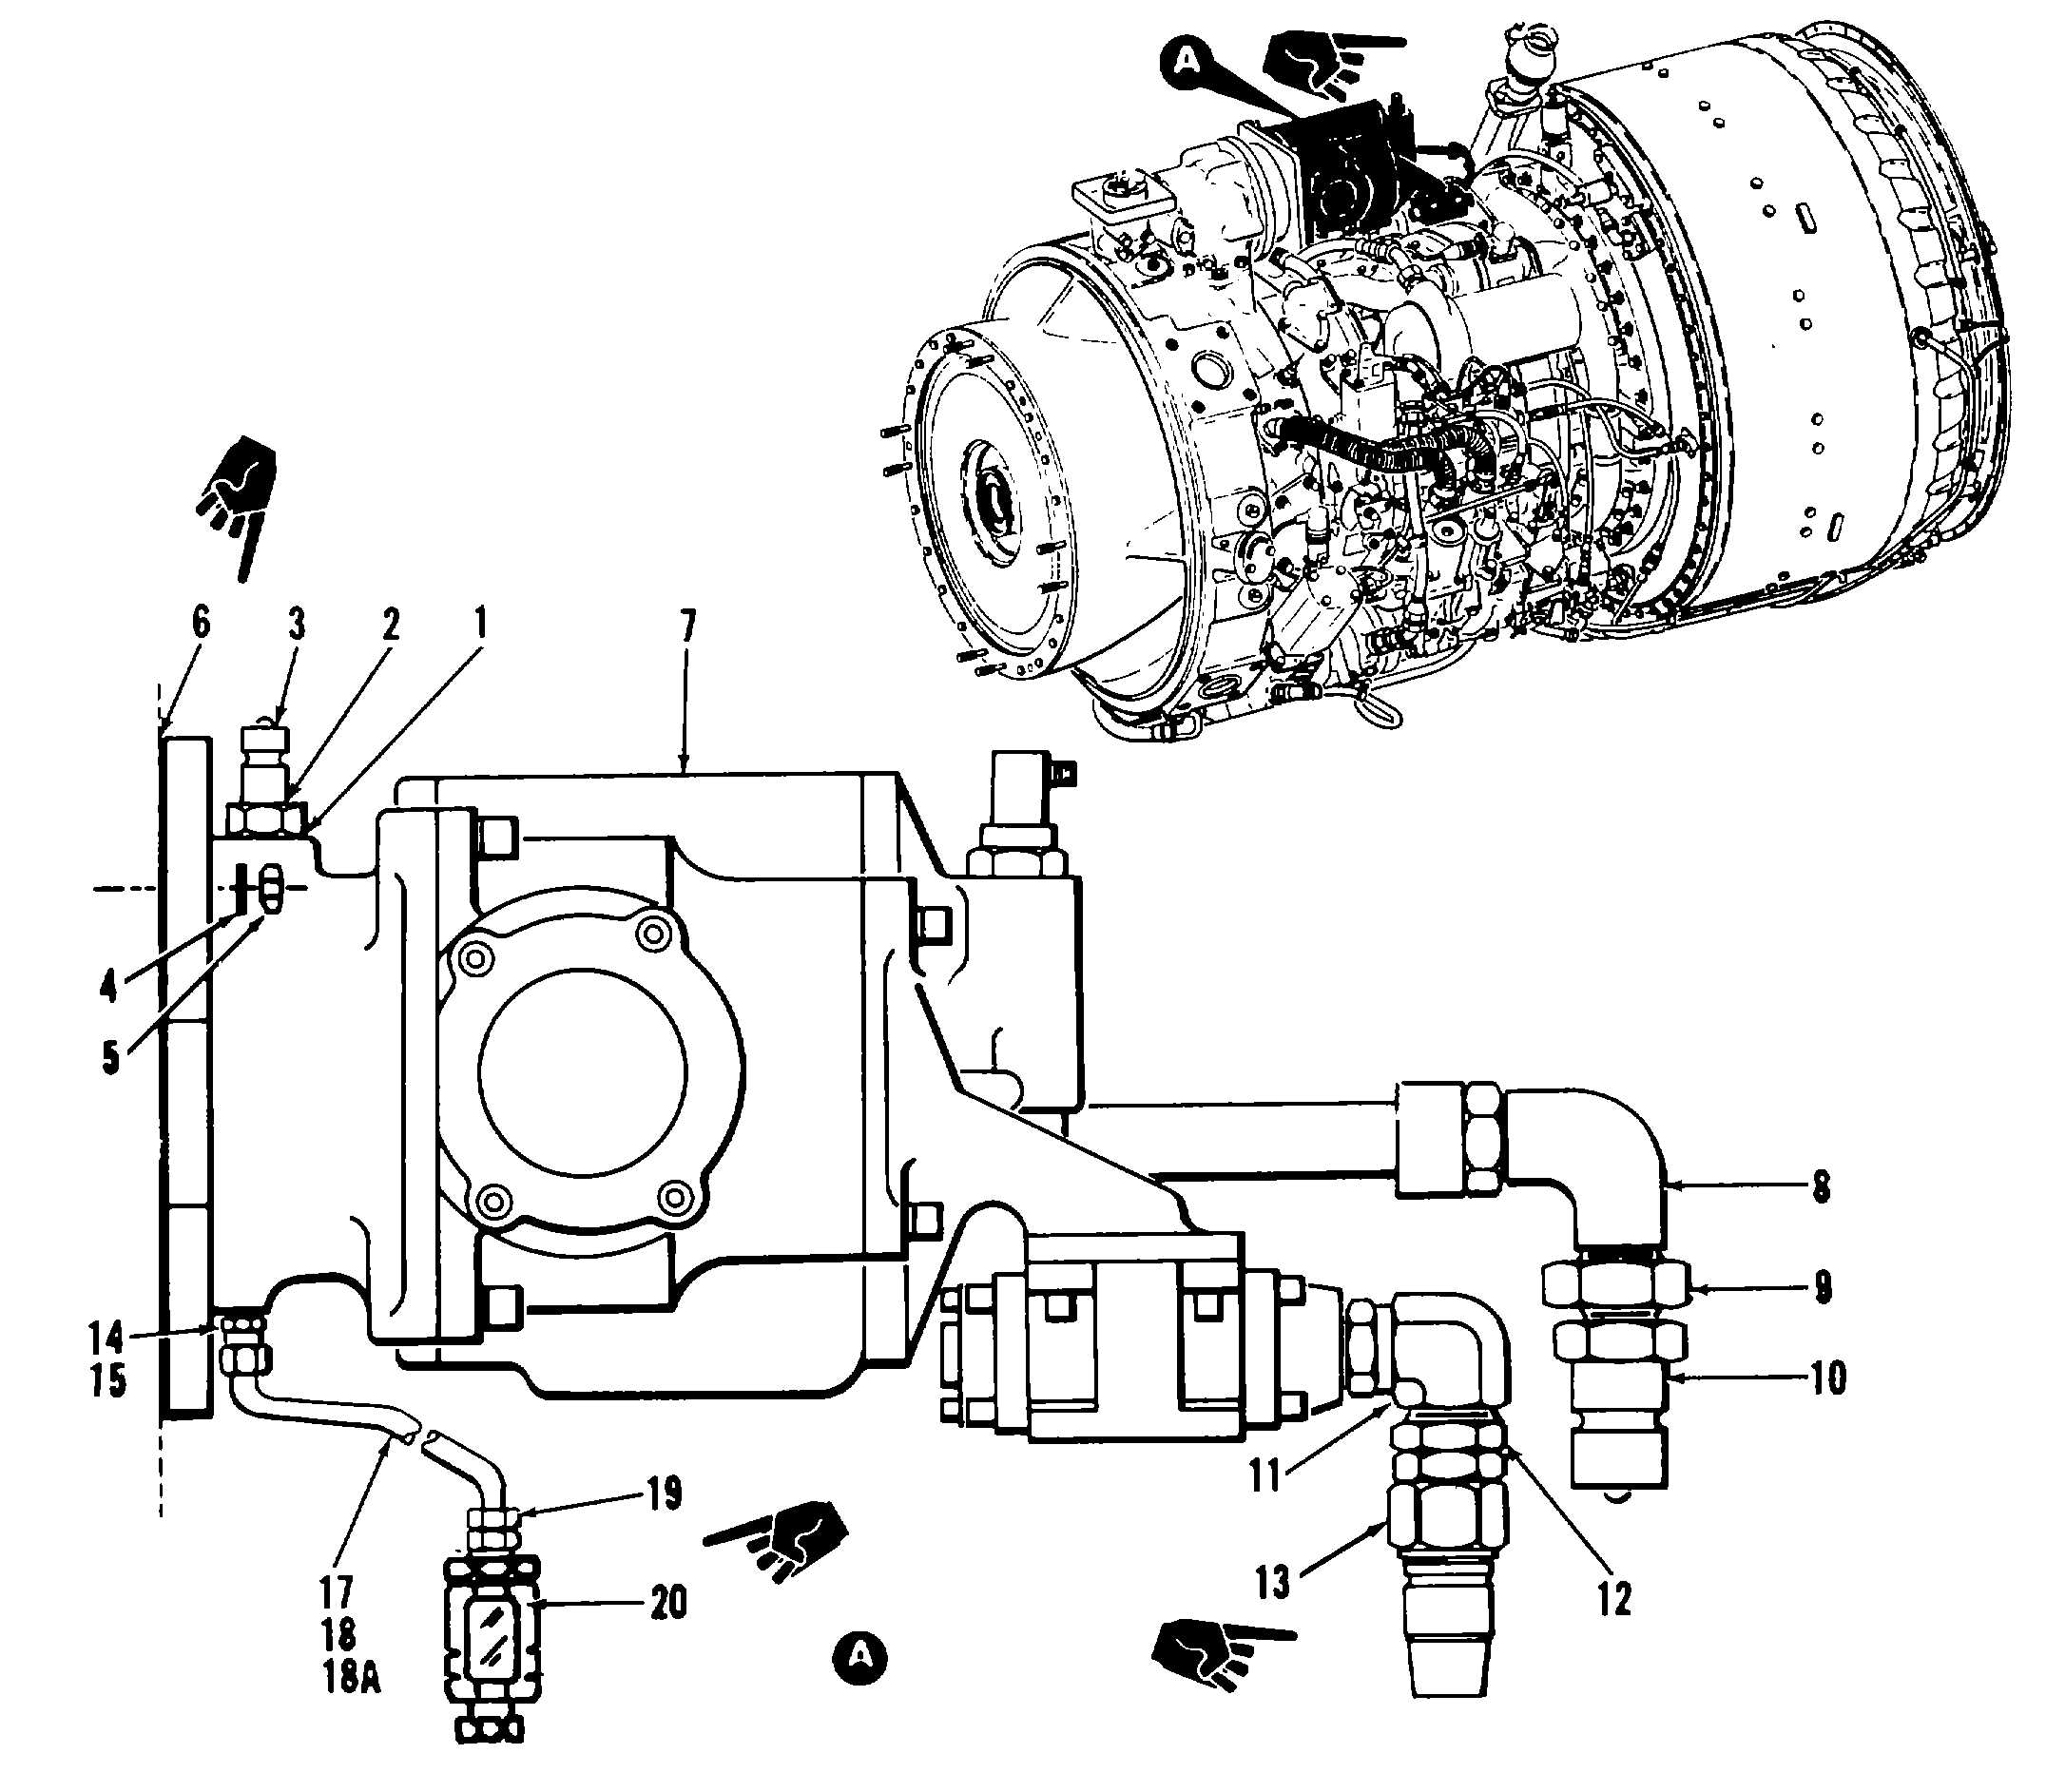 Cfm56 Engine Parts Wiring Source Diagram Rolls Royce Turbine Cross Section Moreover Aircraft Schematic Drawings Further 287212 Also Qantas A380 A